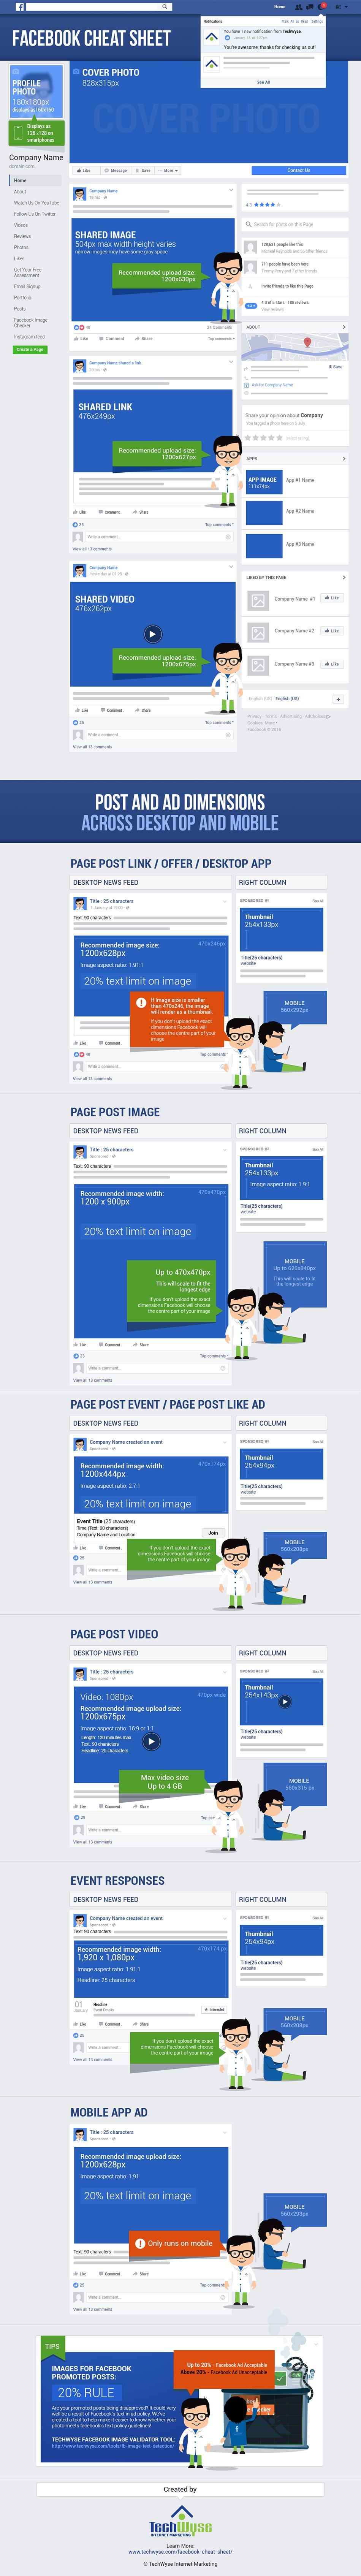 Facebook Cheat Sheet #Infographic